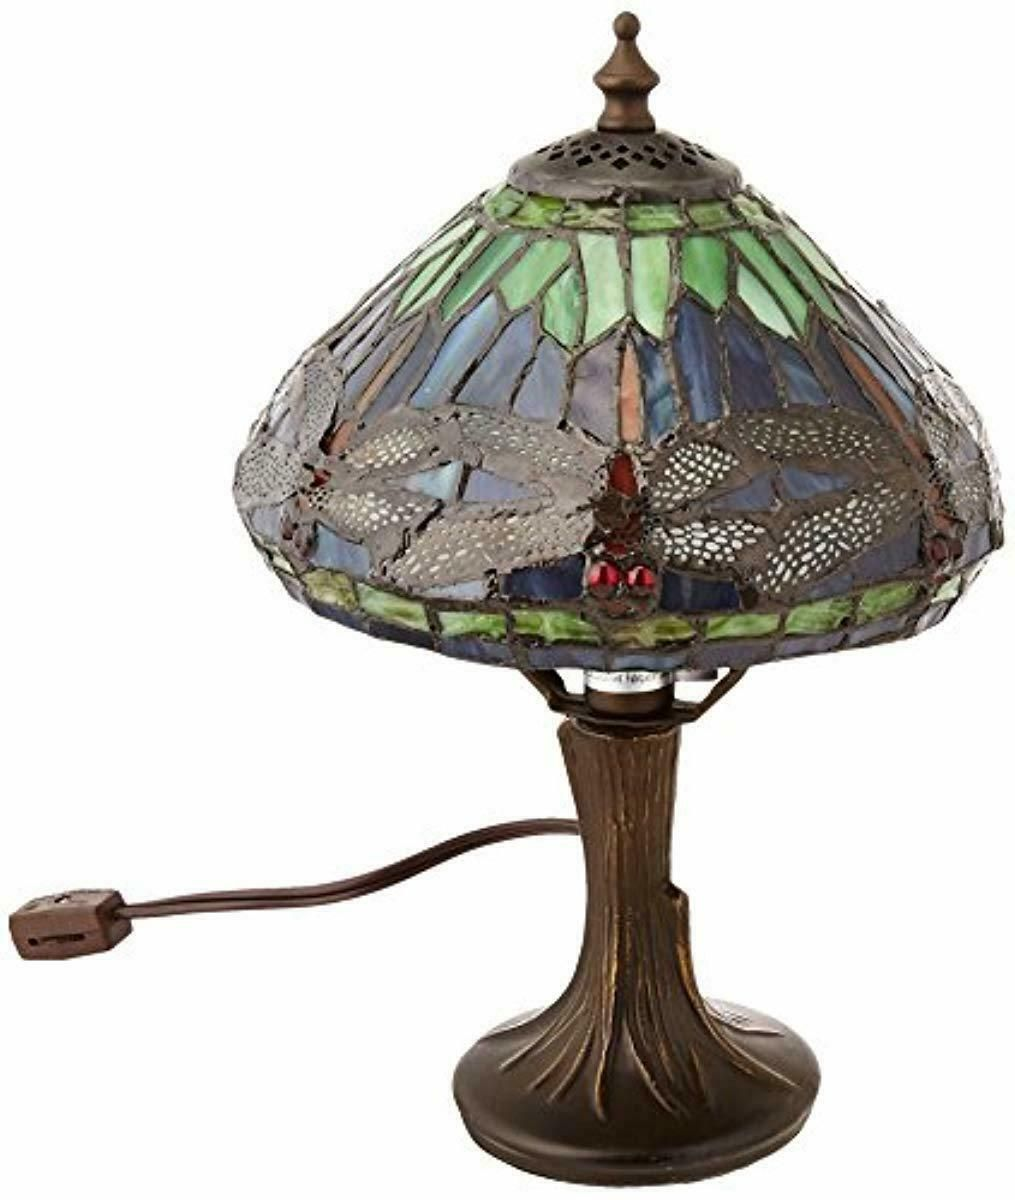 Dale Tiffany 7601 521 Dragonfly Table Lamp Antique Brass And Art Glass Shade Tiffany Lamps Ideas Of Tiffany Table Lamp Lamp Dragonfly Floor Lamp